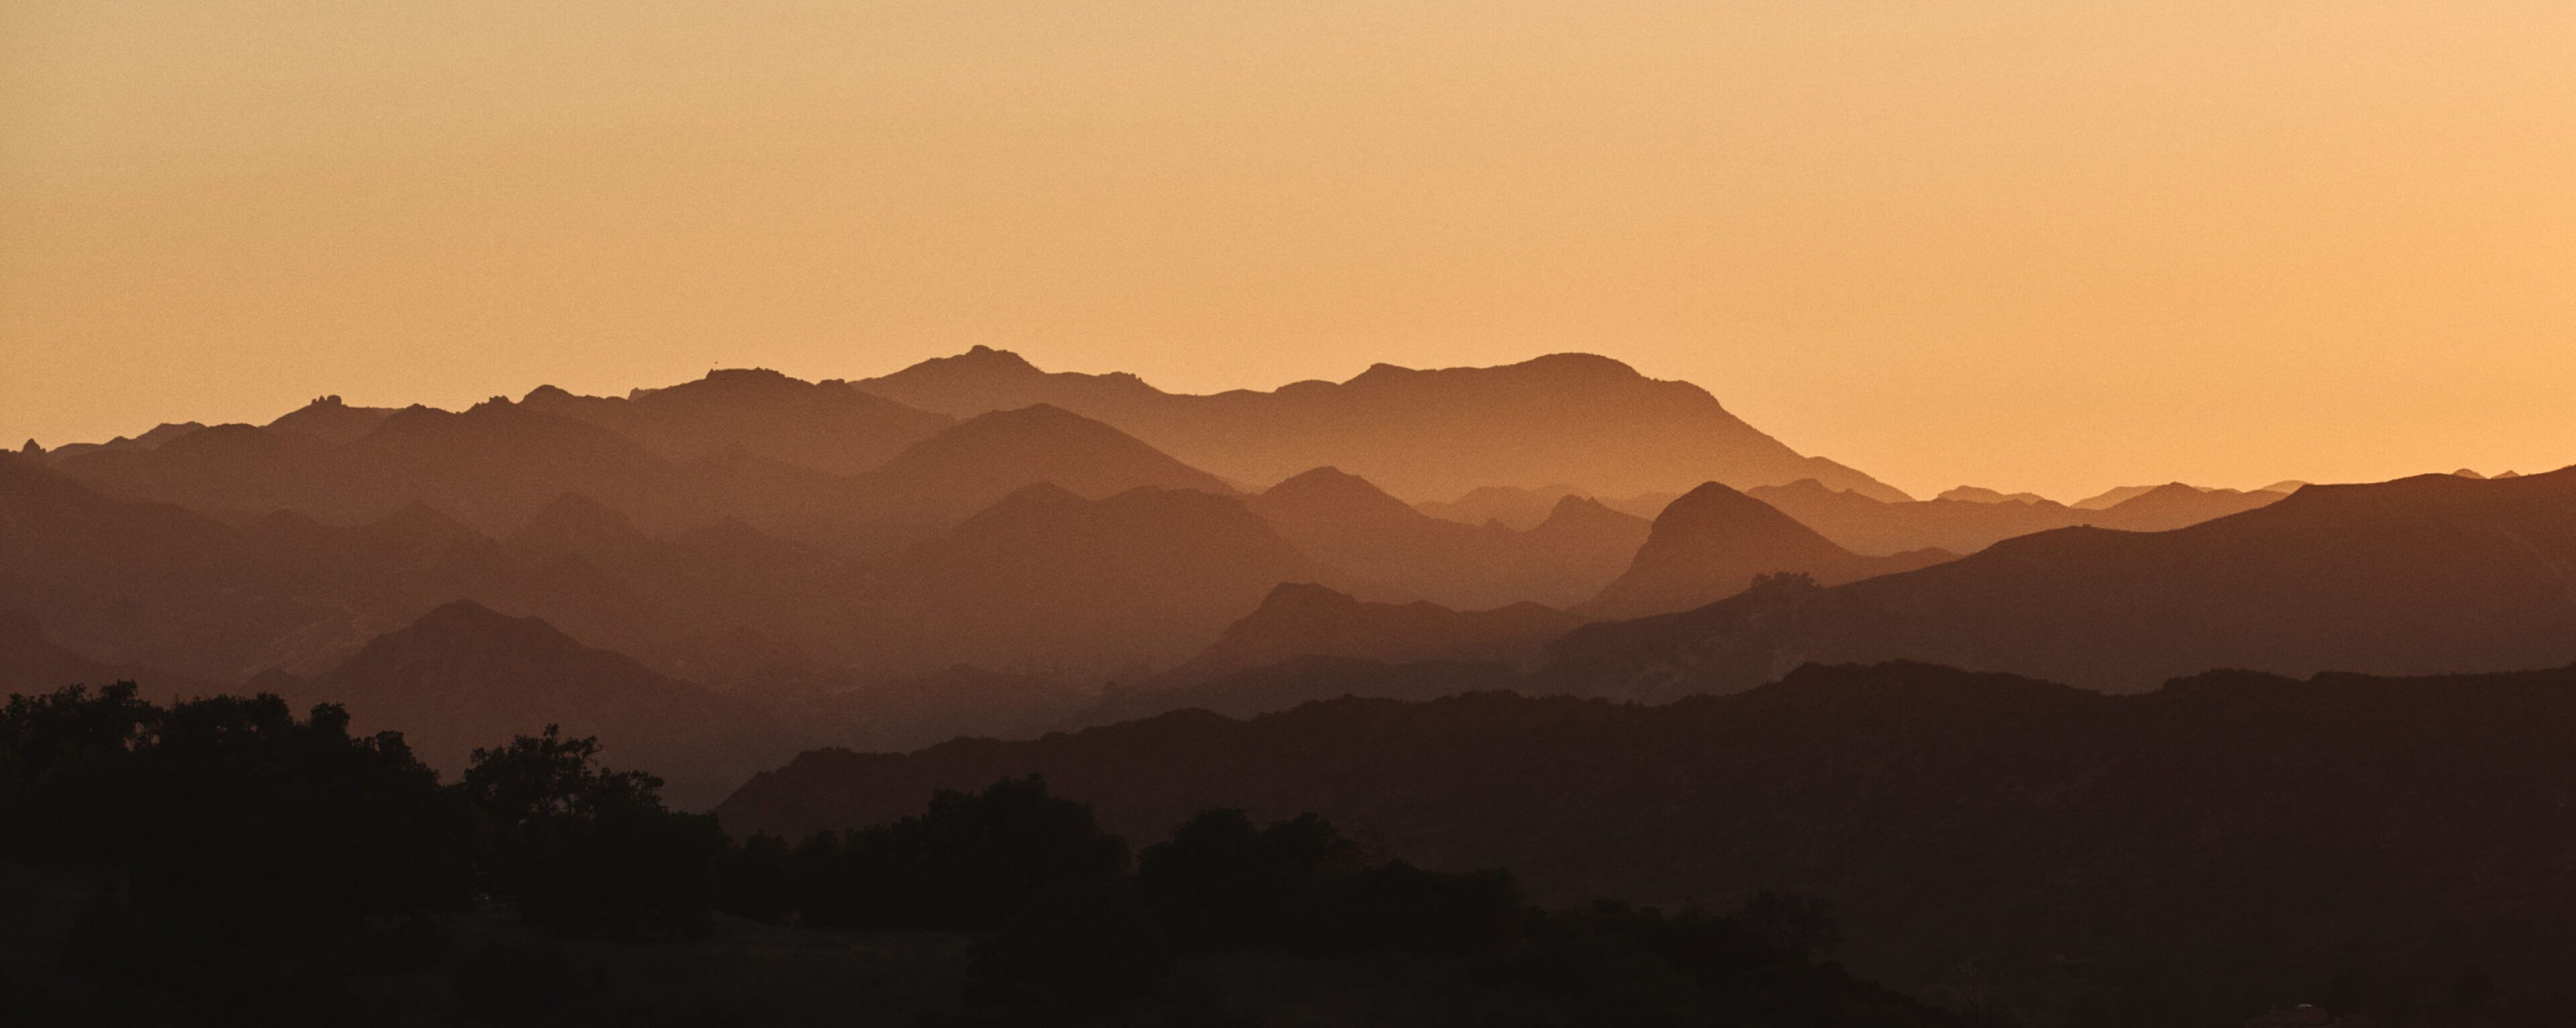 Suggestive hills at sunset